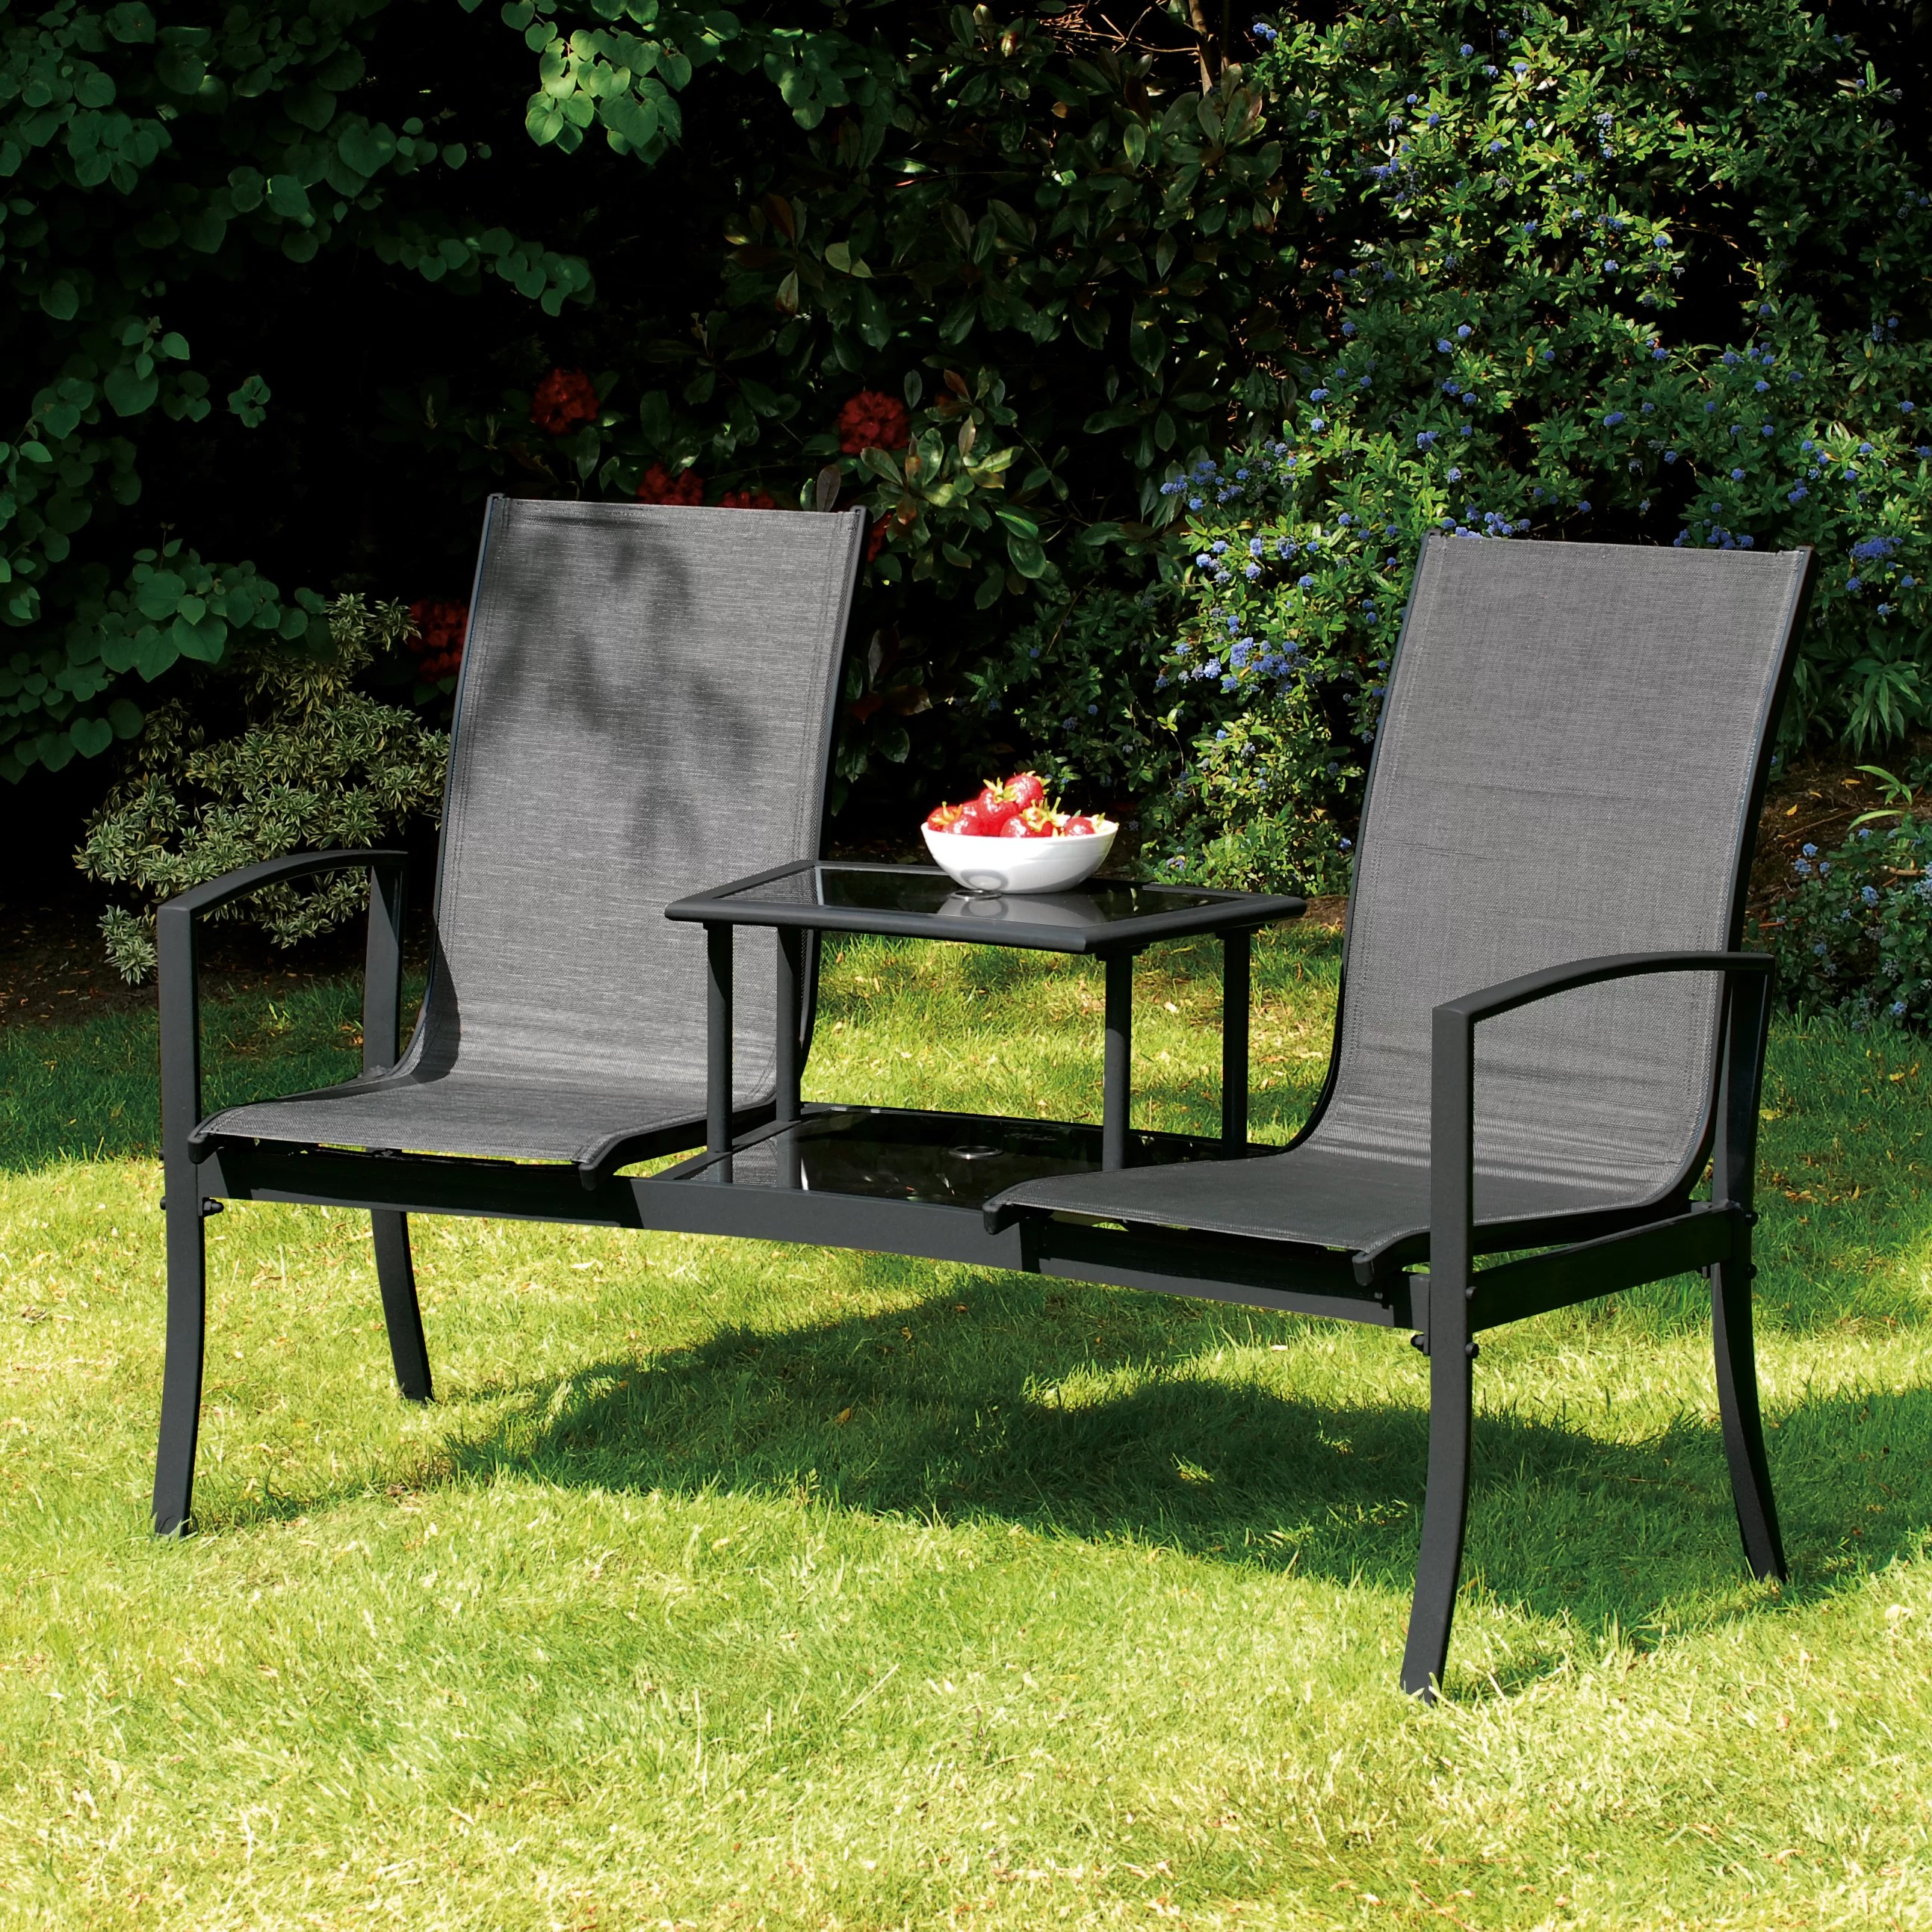 SunTime Outdoor Living Havana Steel Tete-a-Tete Bench ... on Suntime Outdoor Living  id=53533